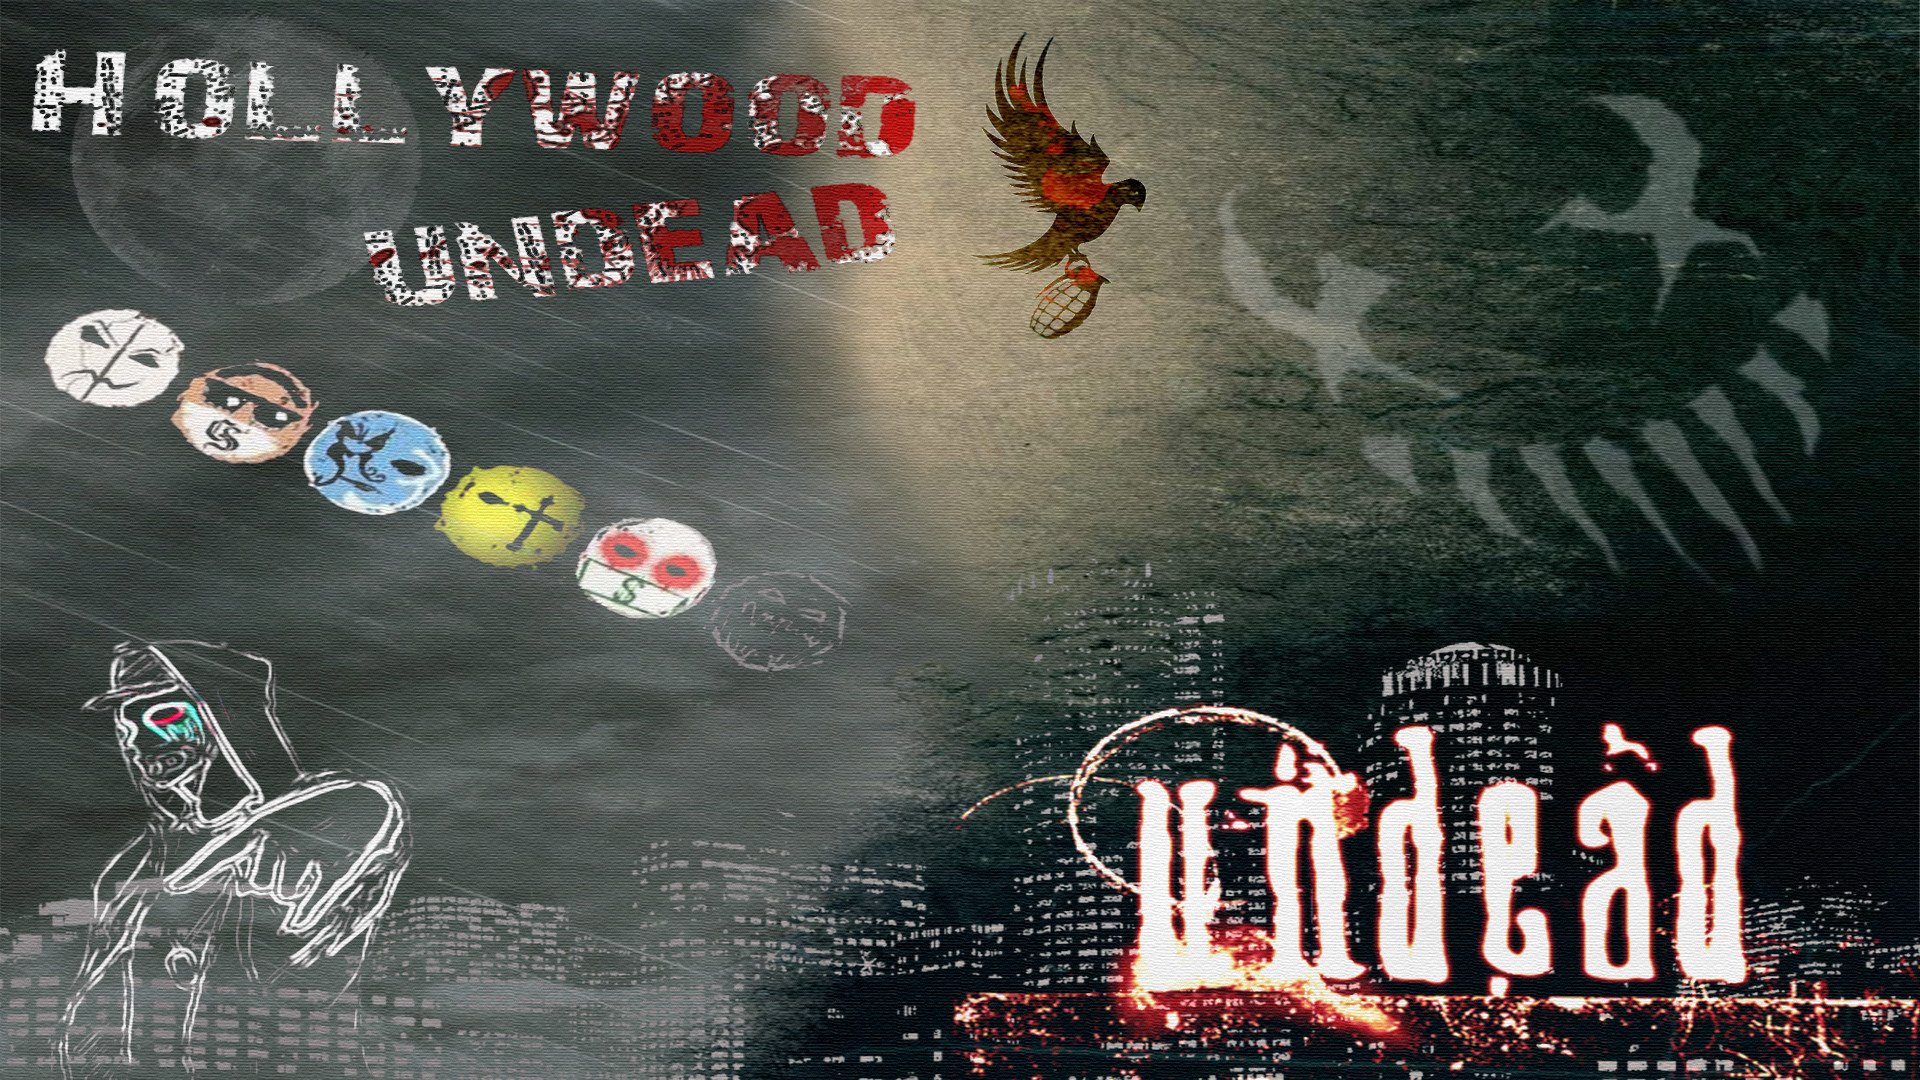 1920x1080 Hollywood Undead Picture HD.